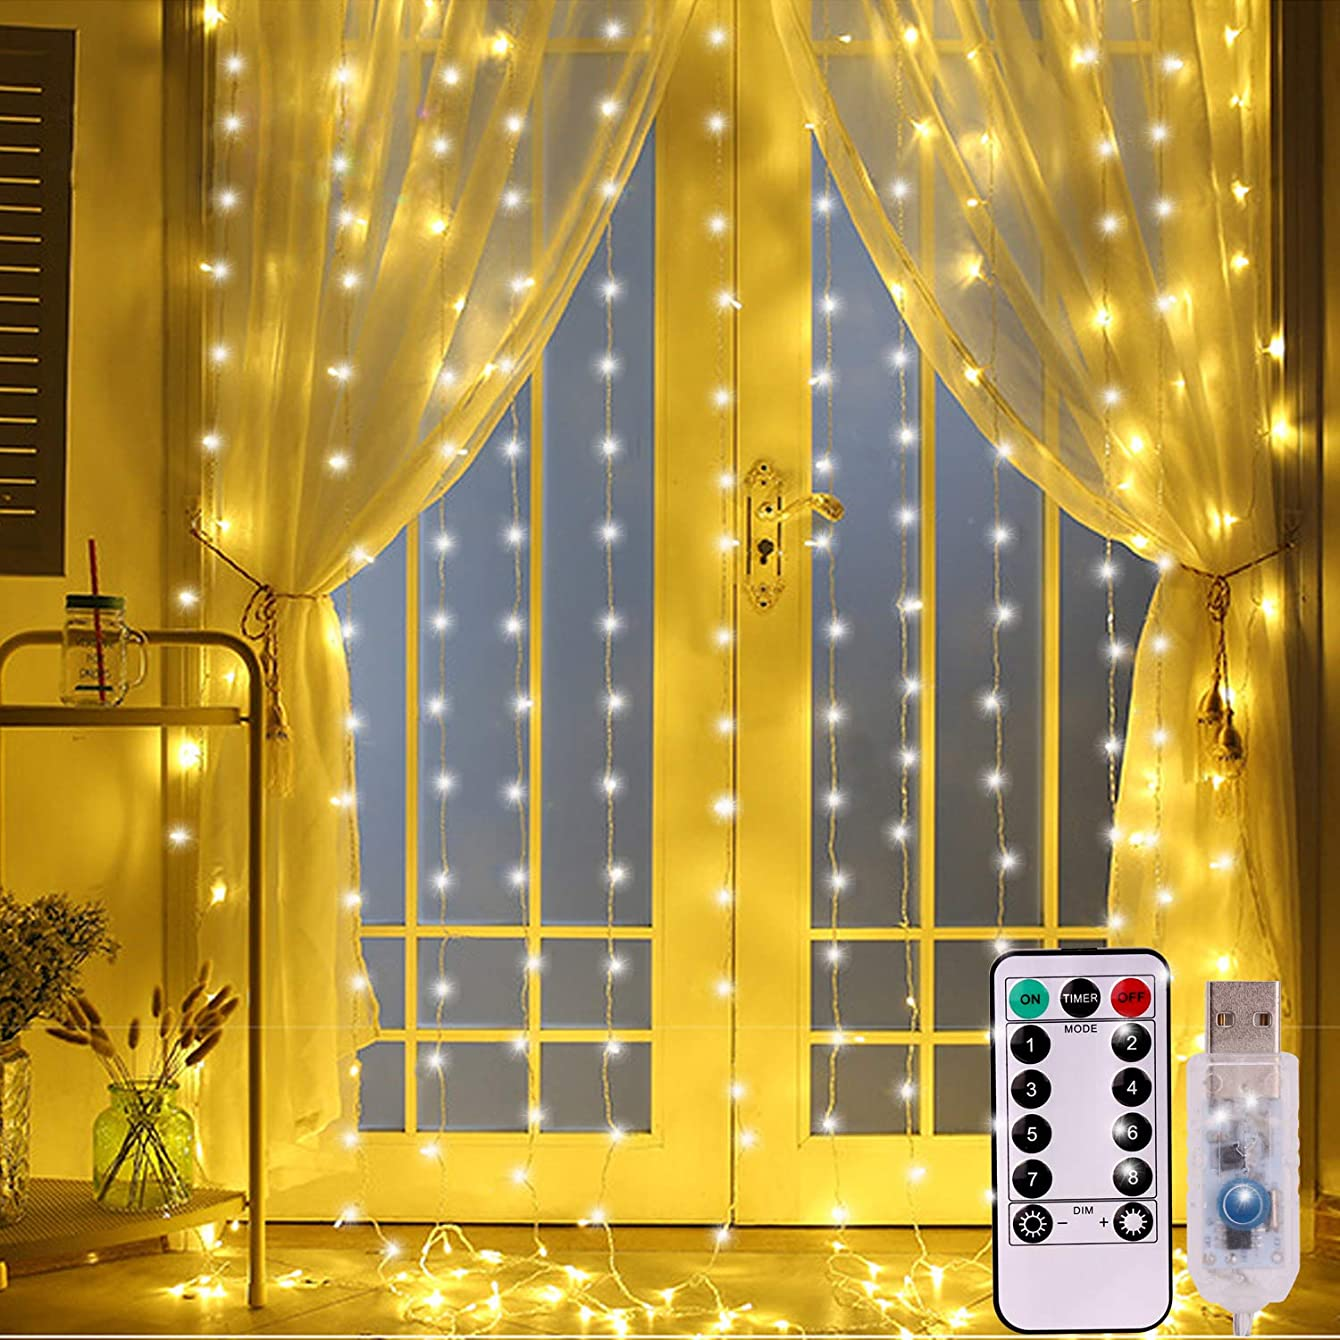 MYbarley 300 LED Window Curtain String Lighting USB Powered 8 Modes Timer 9.8ftx9.8ft Waterproof Icicle Lights String with Remote for Wedding Party Bedroom Wall Holiday Outdoor Indoor Decorations